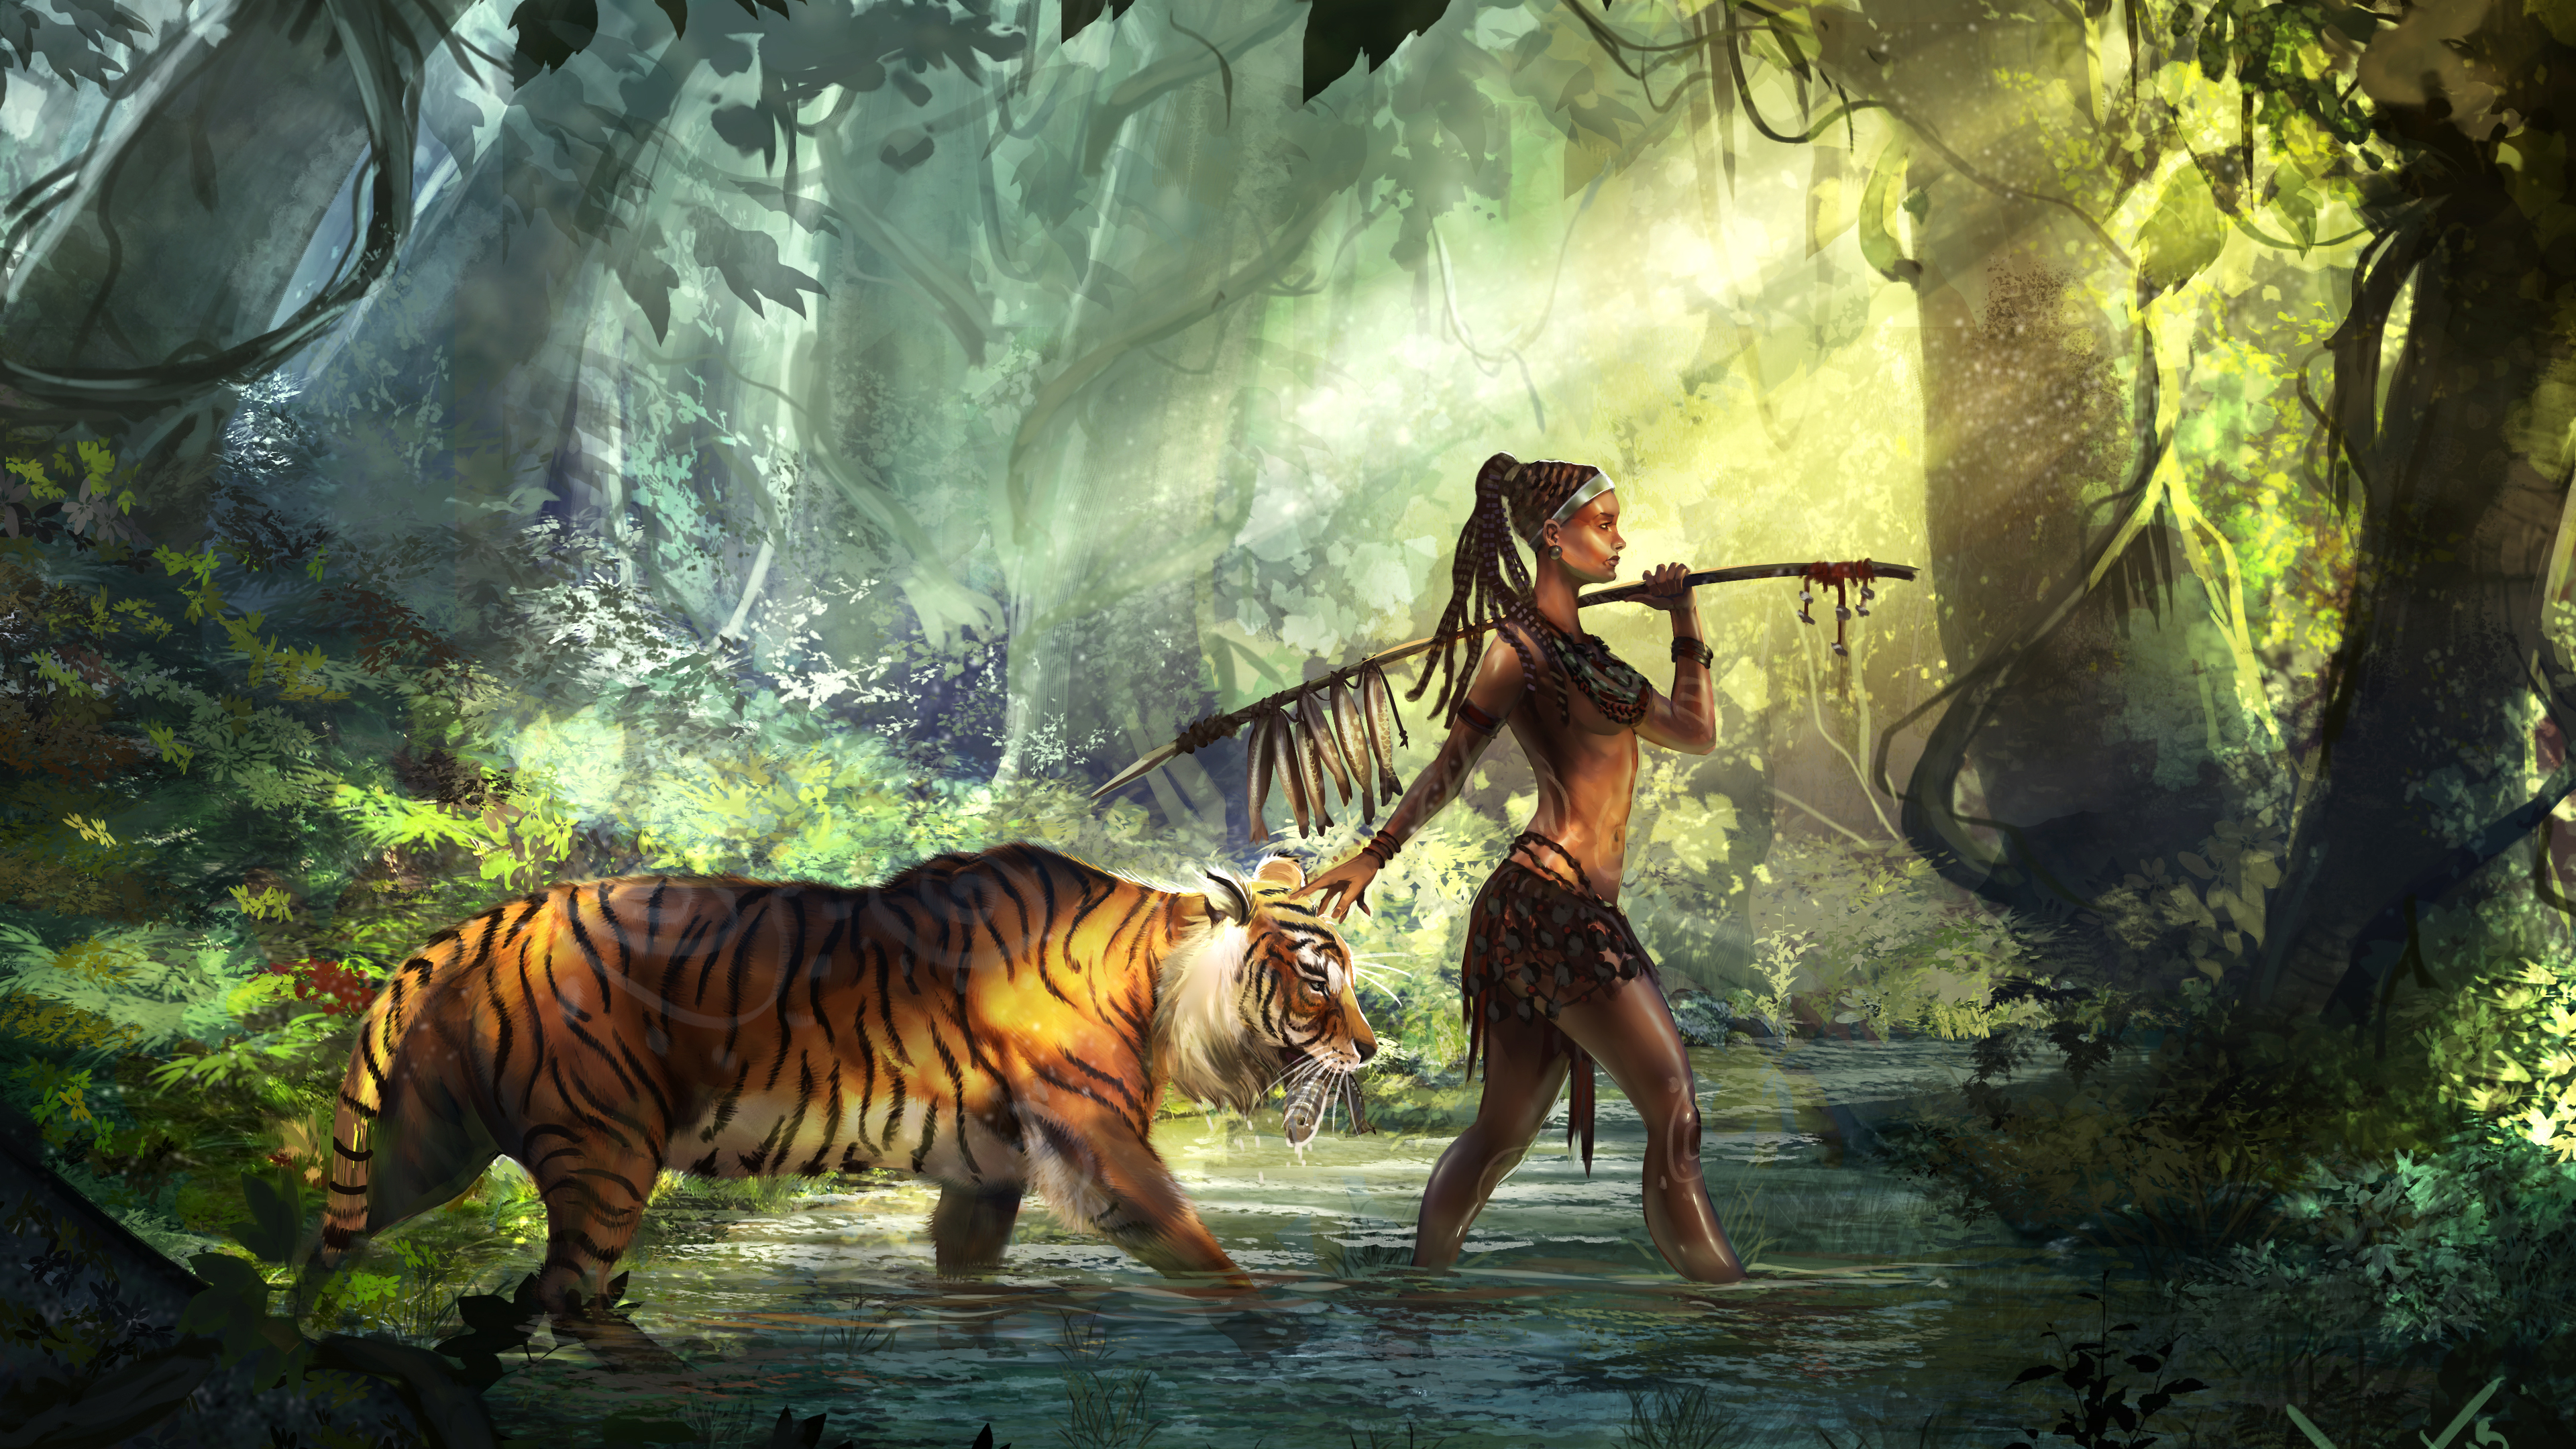 Wallpaper 4k Tiger Guardian 4k 4k Wallpapers Artist Wallpapers Artwork Wallpapers Deviantart Wallpapers Digital Art Wallpapers Hd Wallpapers Tiger Wallpapers